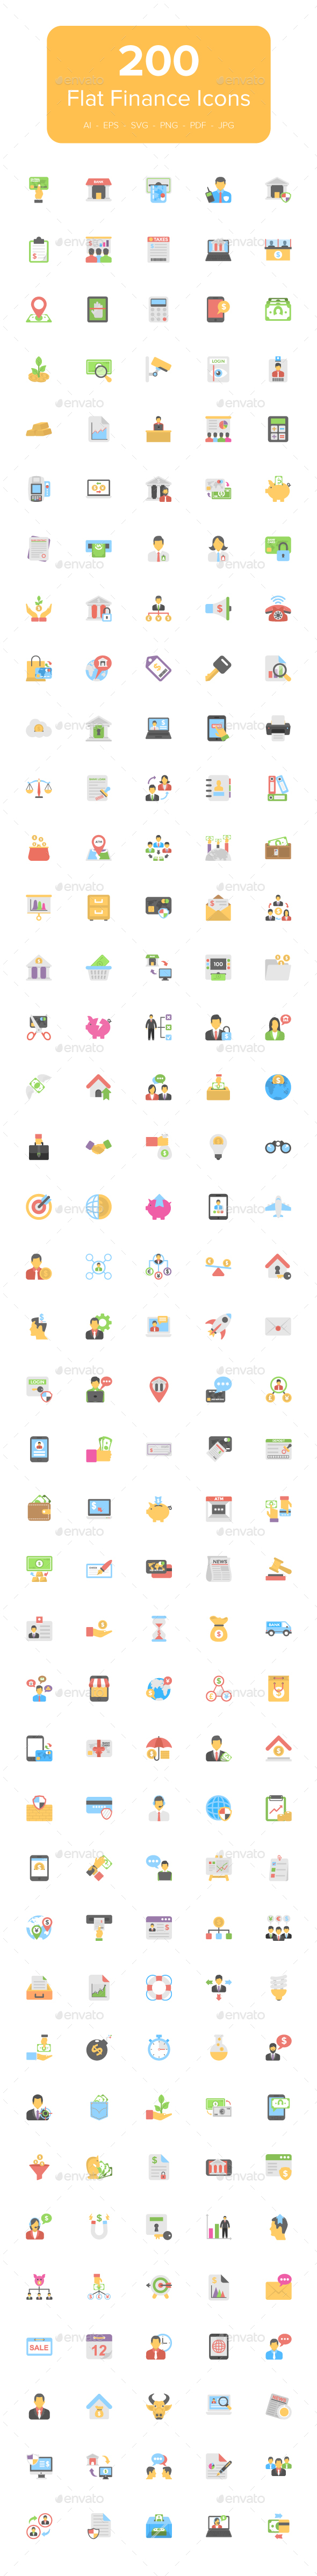 GraphicRiver 200 Flat Finance Icons 20499004